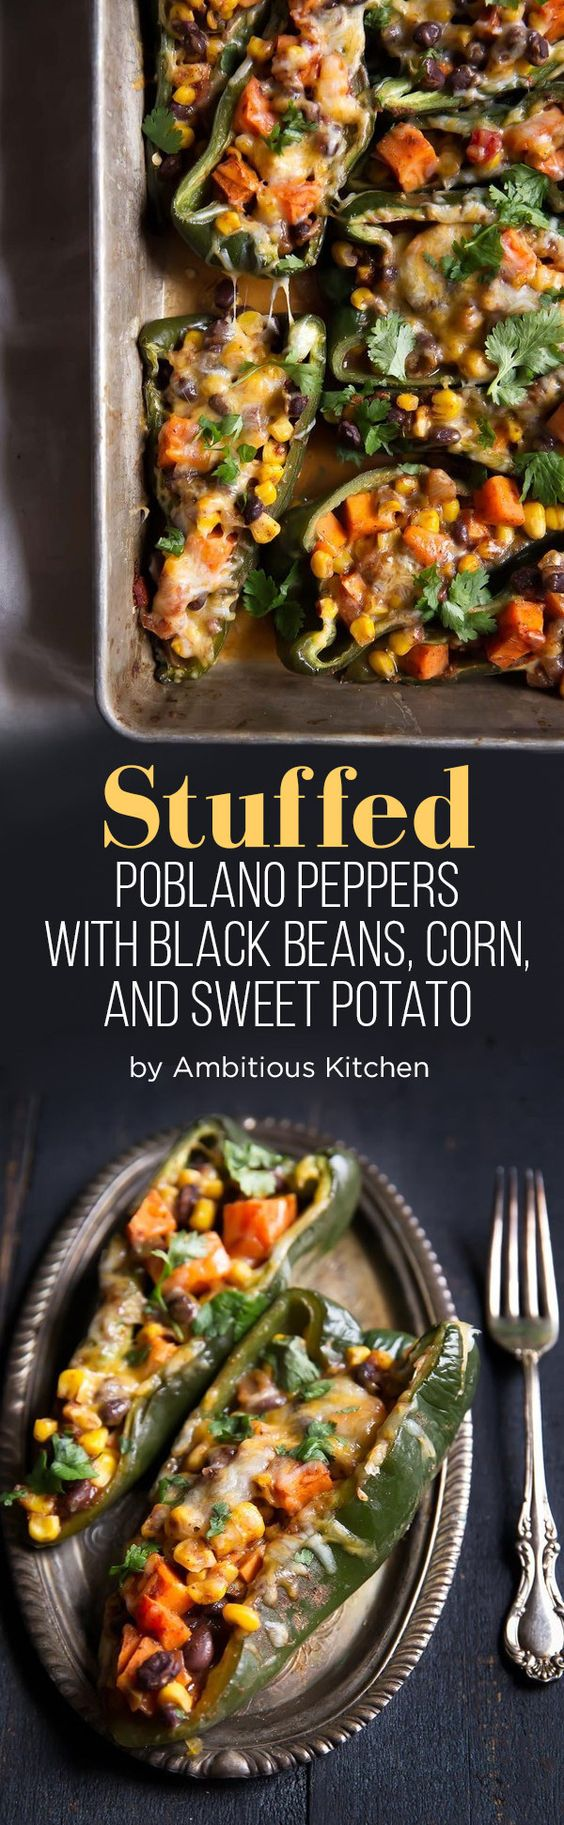 Stuffed Poblano Peppers with Black Beans, Corn, and Sweet Potato | Here's What You Should Eat For Dinner This Week